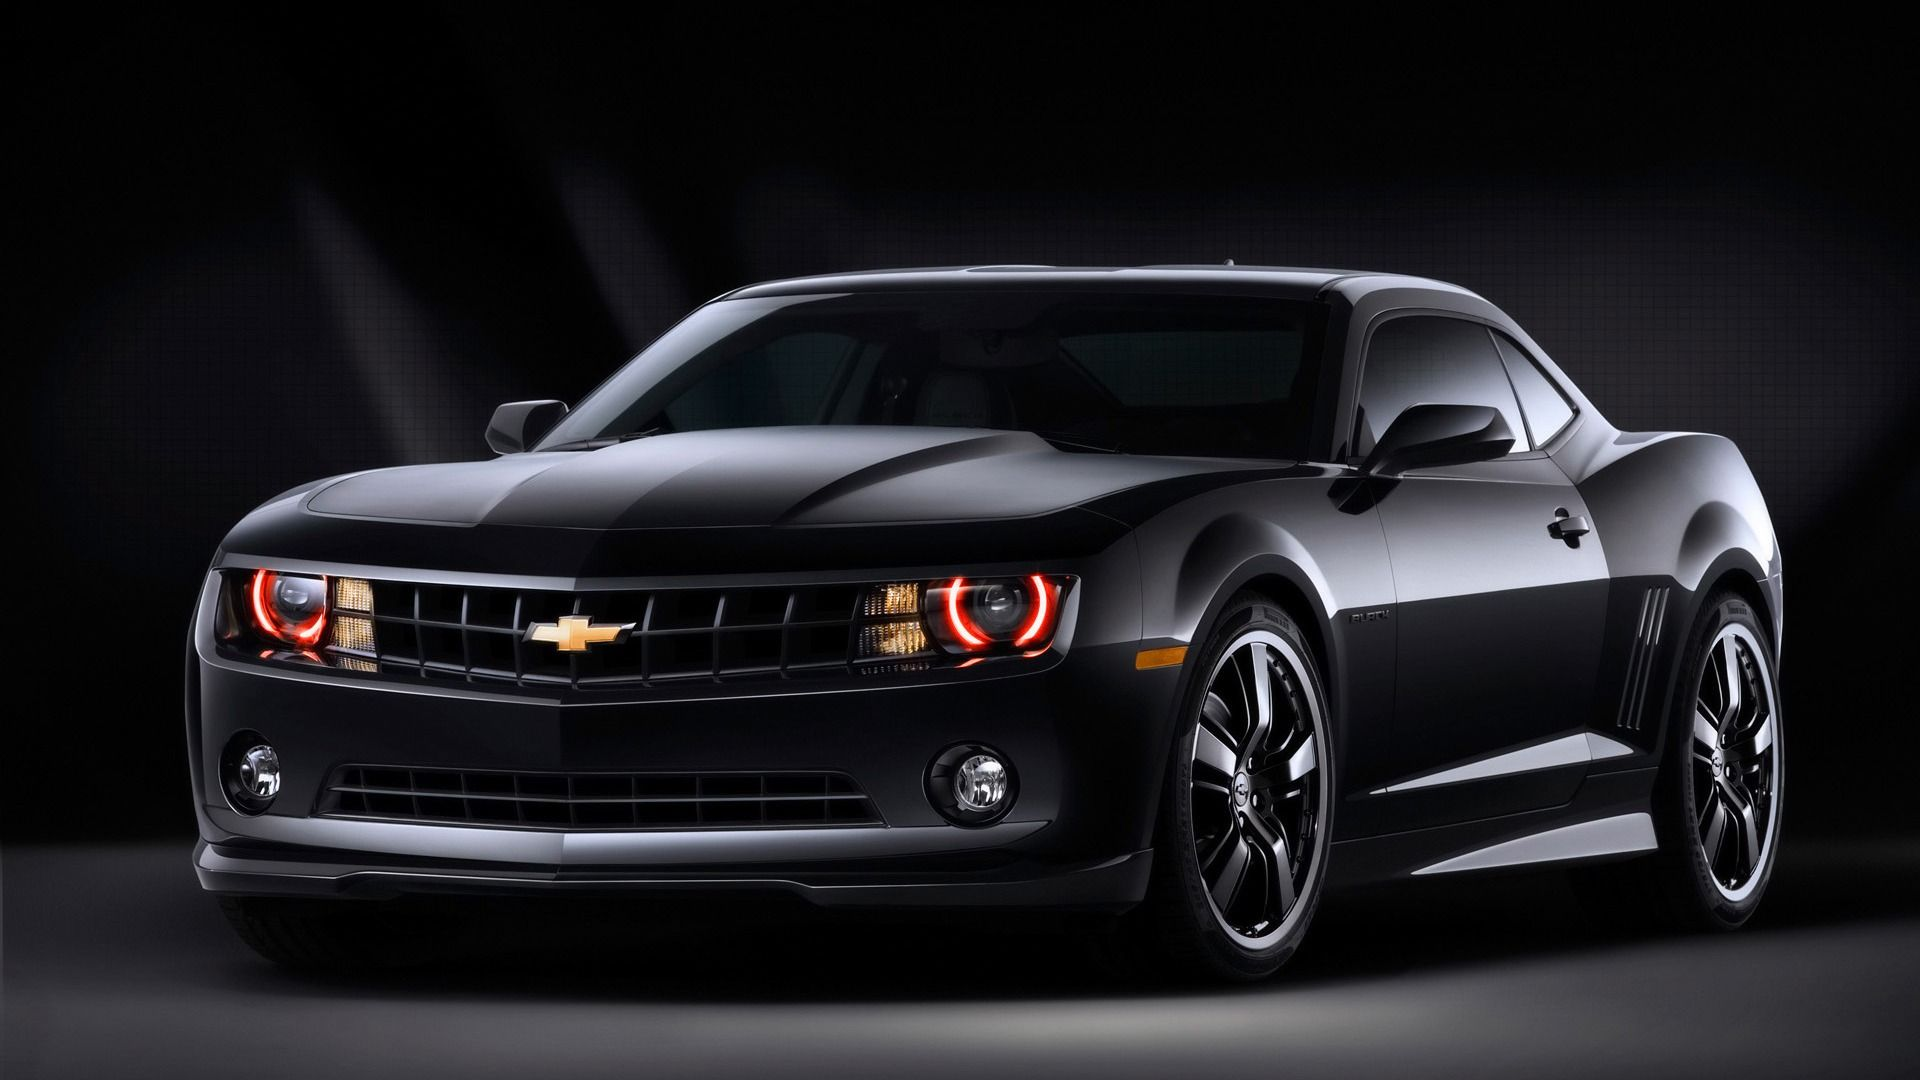 Cars Hd Wallpapers Photo For Desktop Background Cars Cartoon 1920x1080